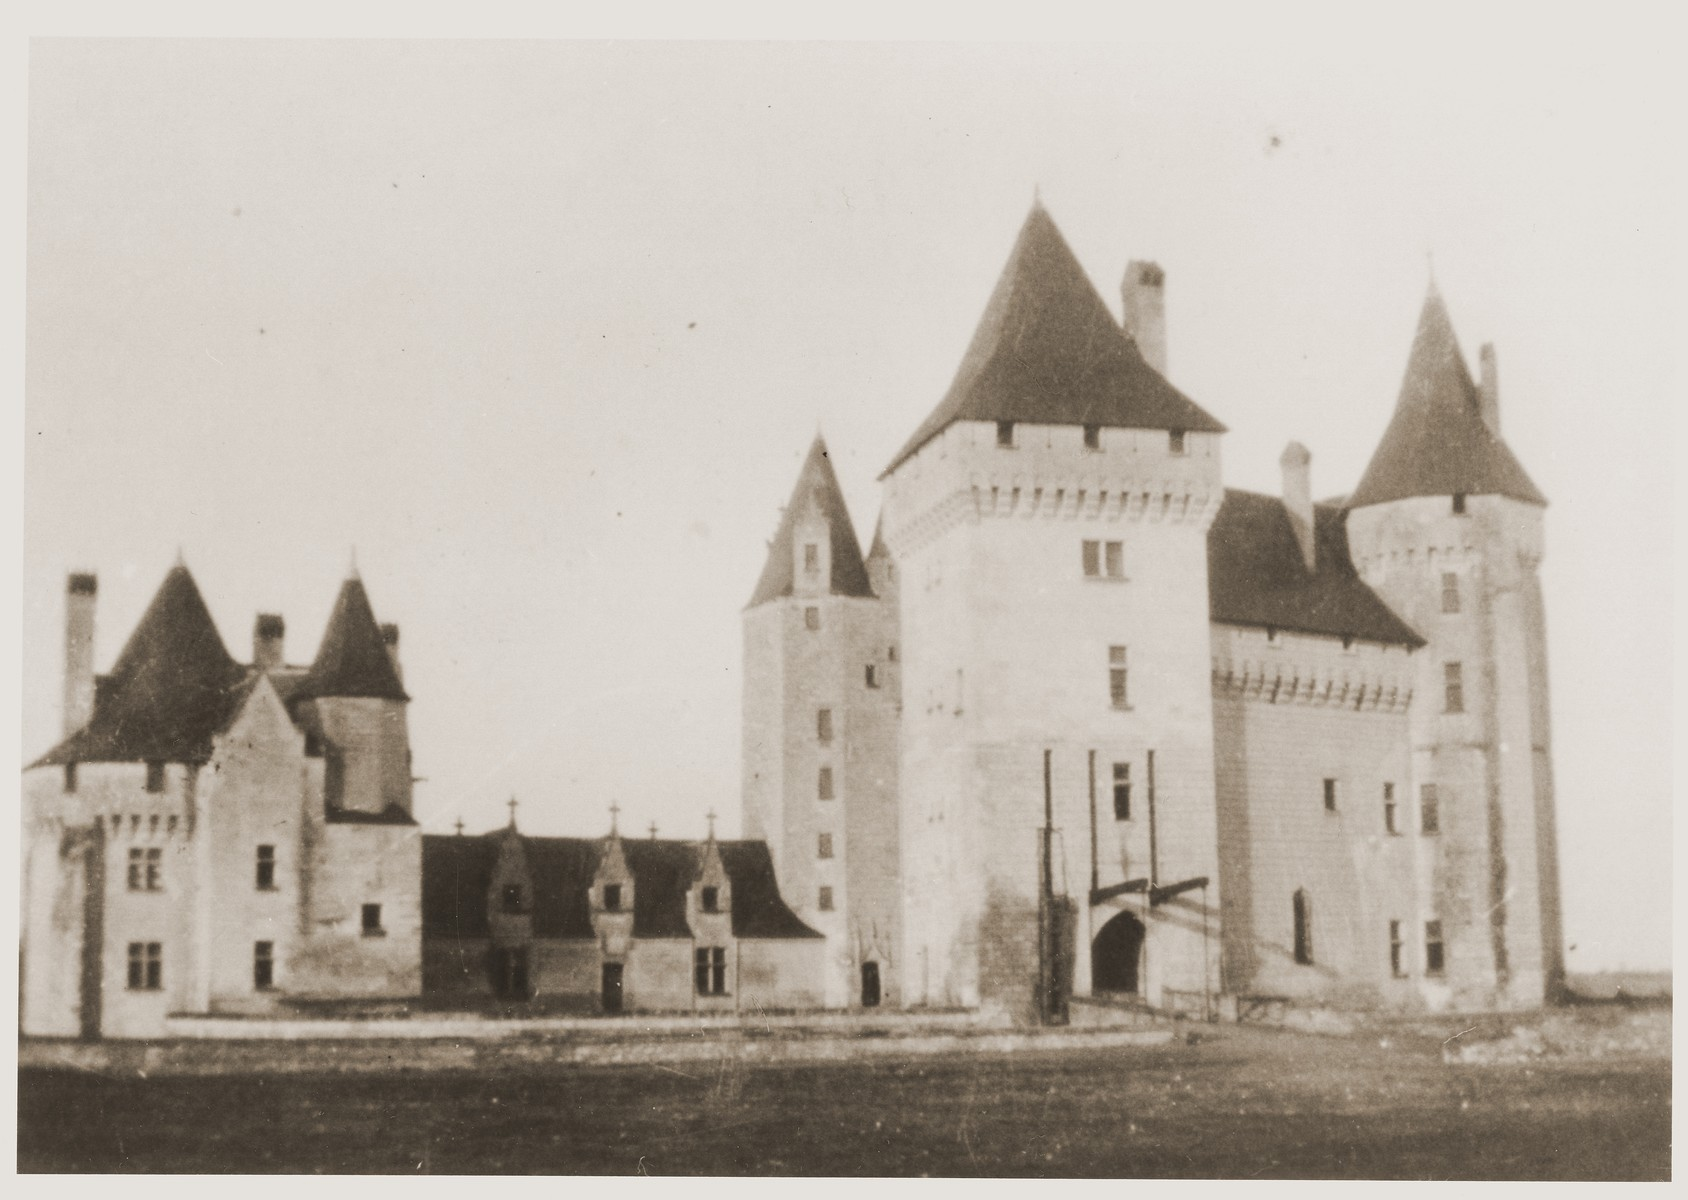 View of the chateau at Le Coudray, where Jewish children were hidden during the war.